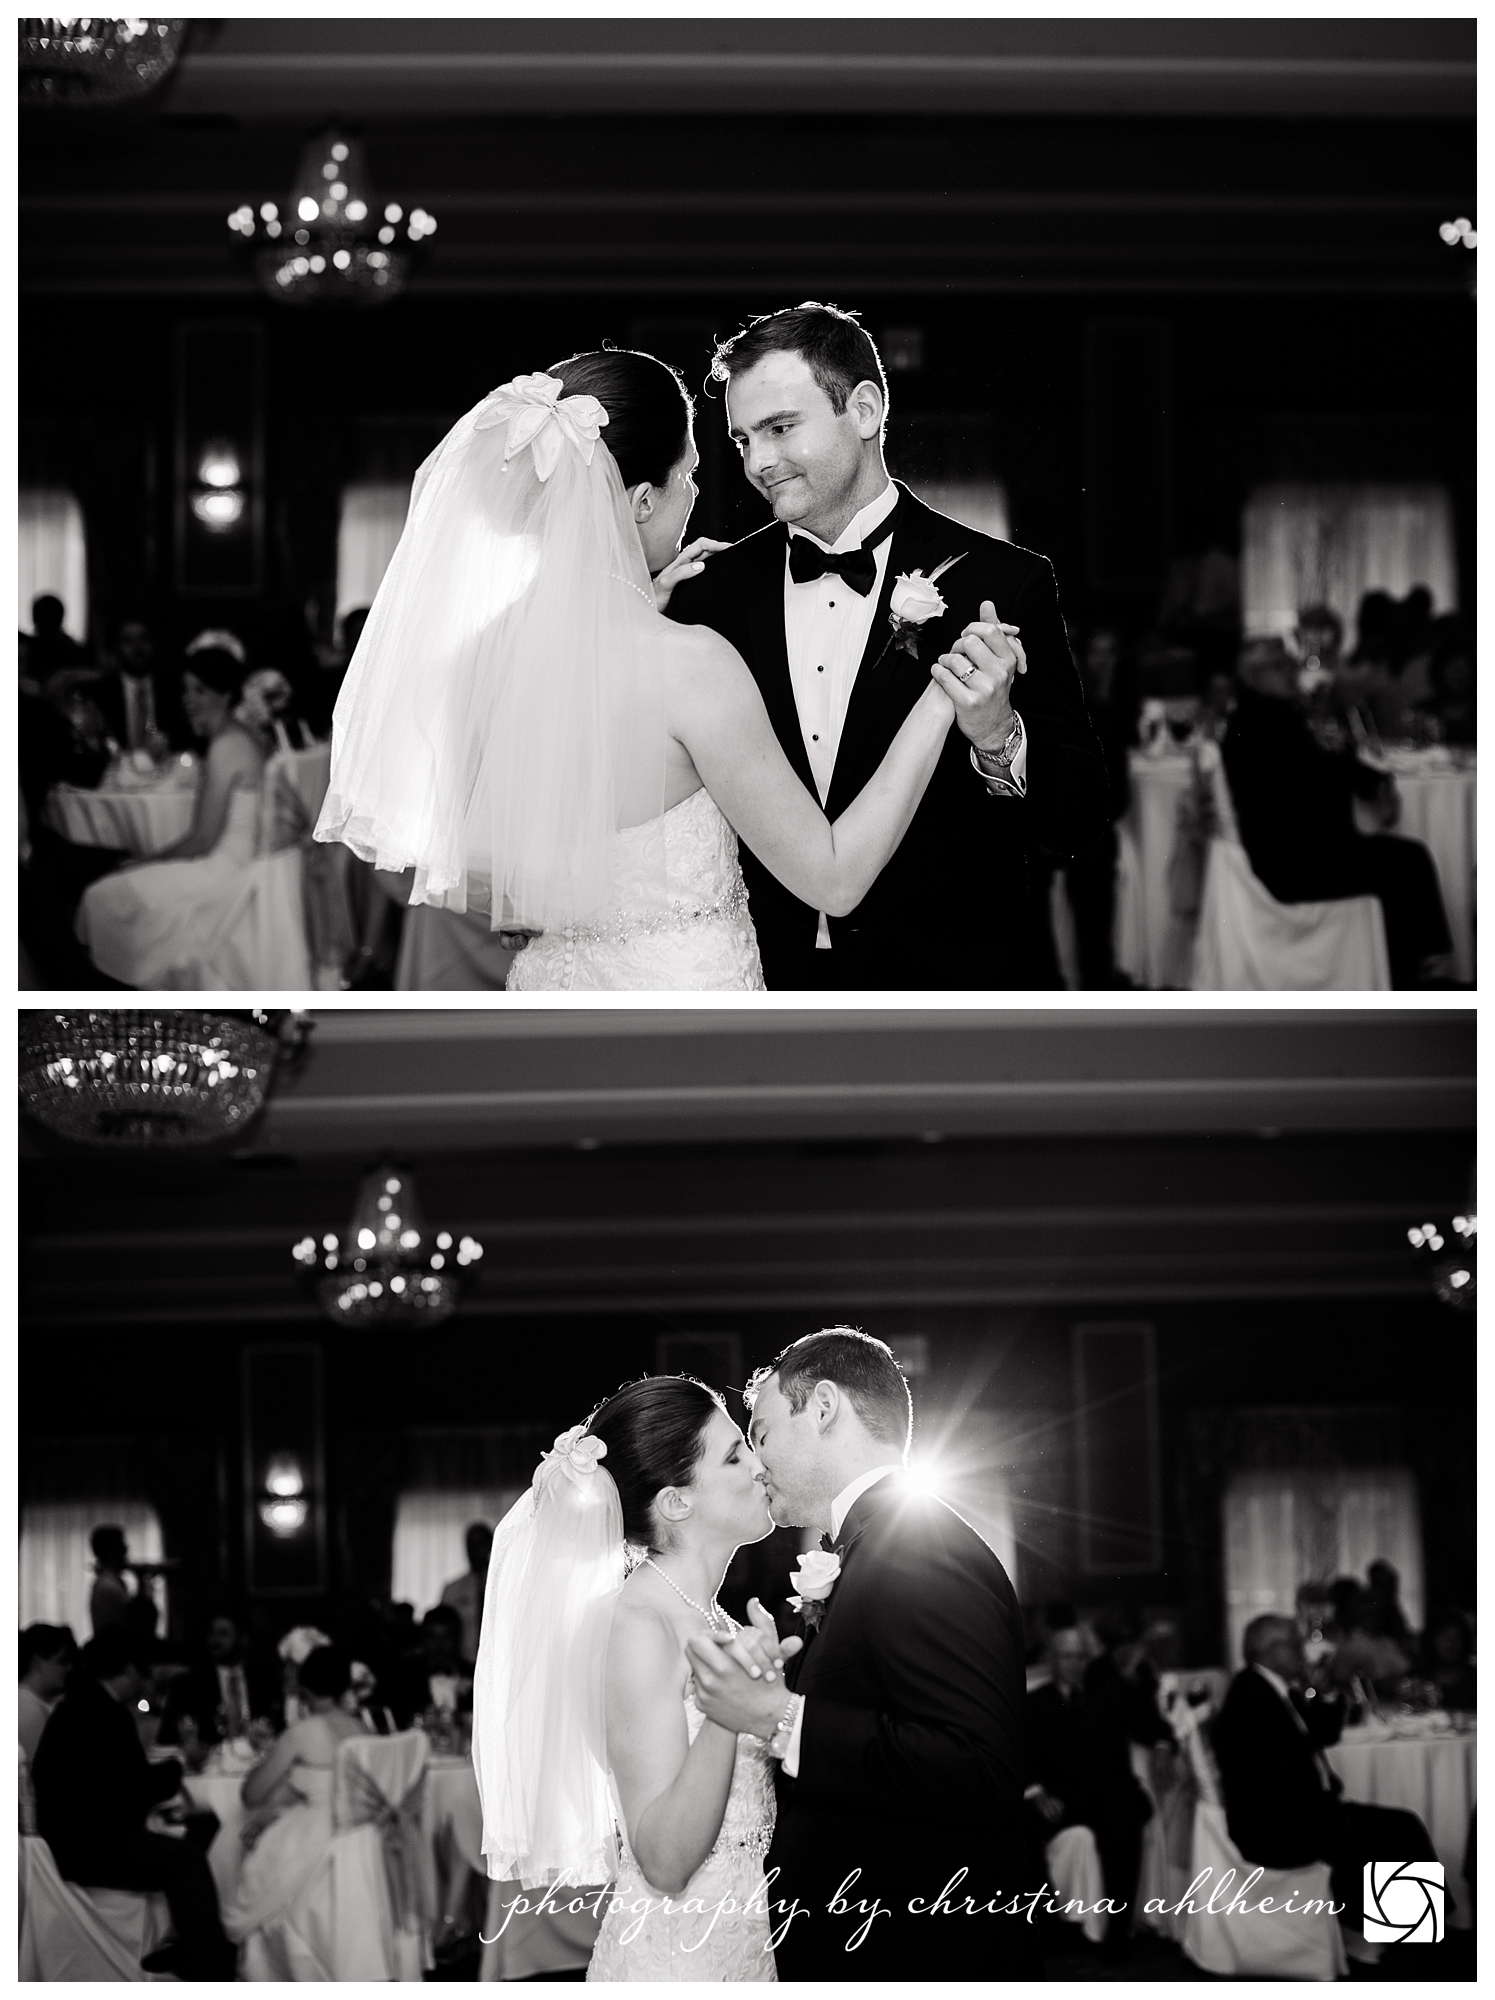 Chesterfield-Forest-Hill-Country-Club-Golf-Missouri-Wedding-Photographer-ChristinaMorgan-611